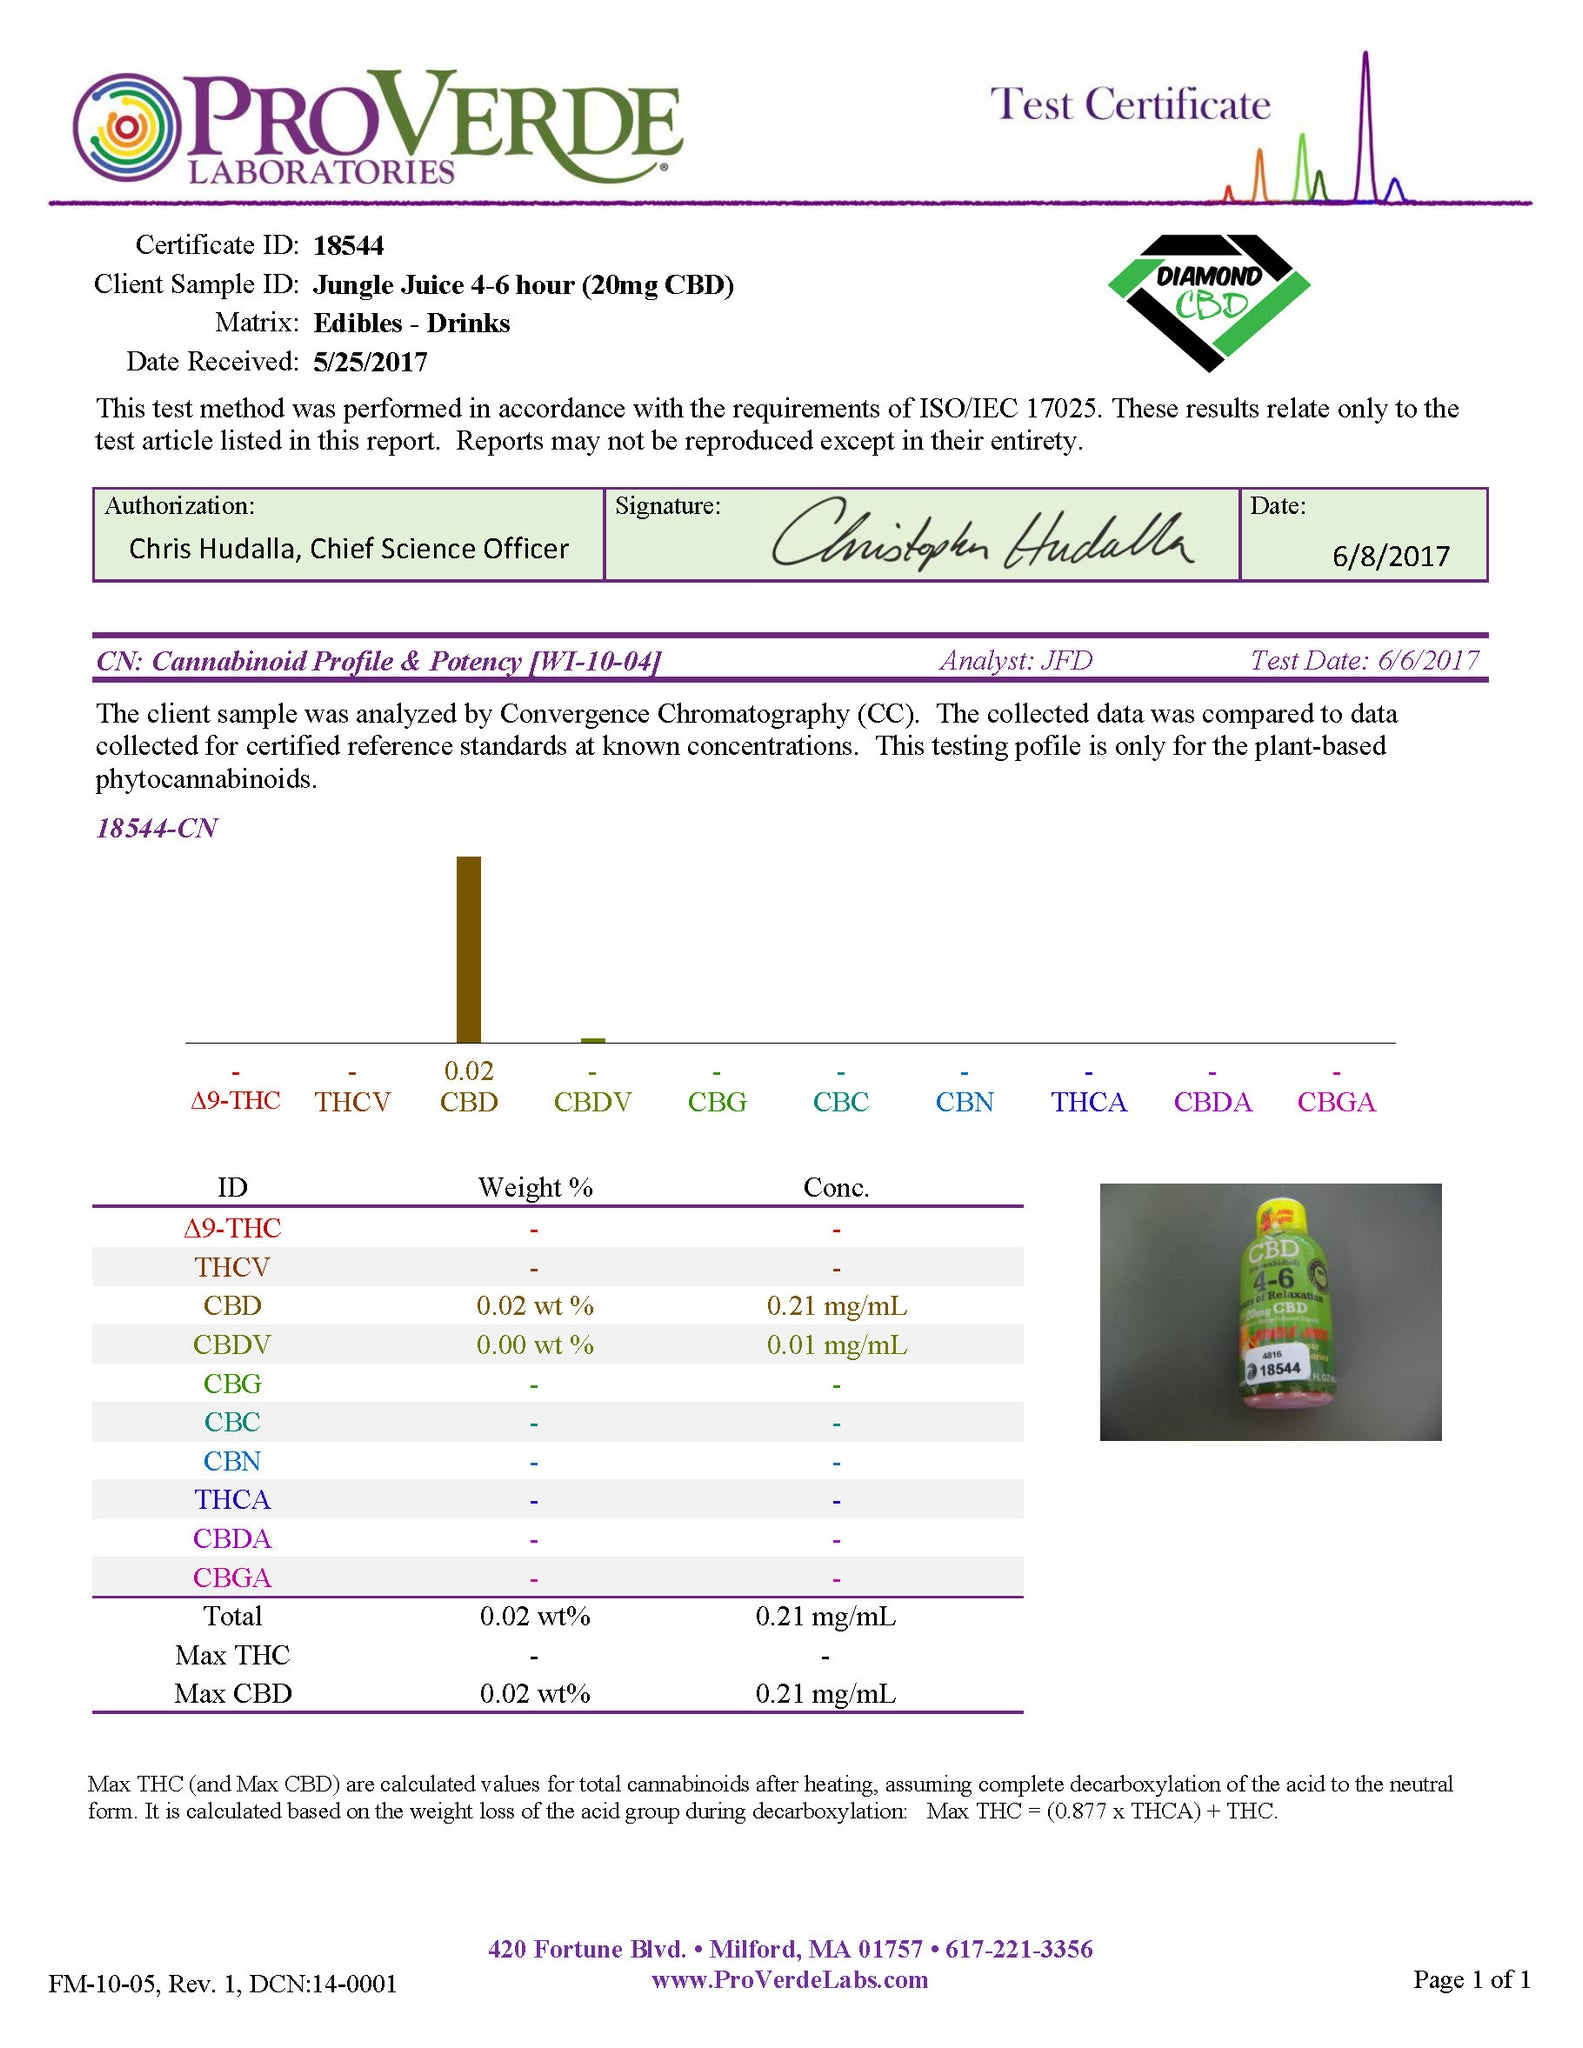 Independent Lab Tests Verify Diamond CBD Products Are THC